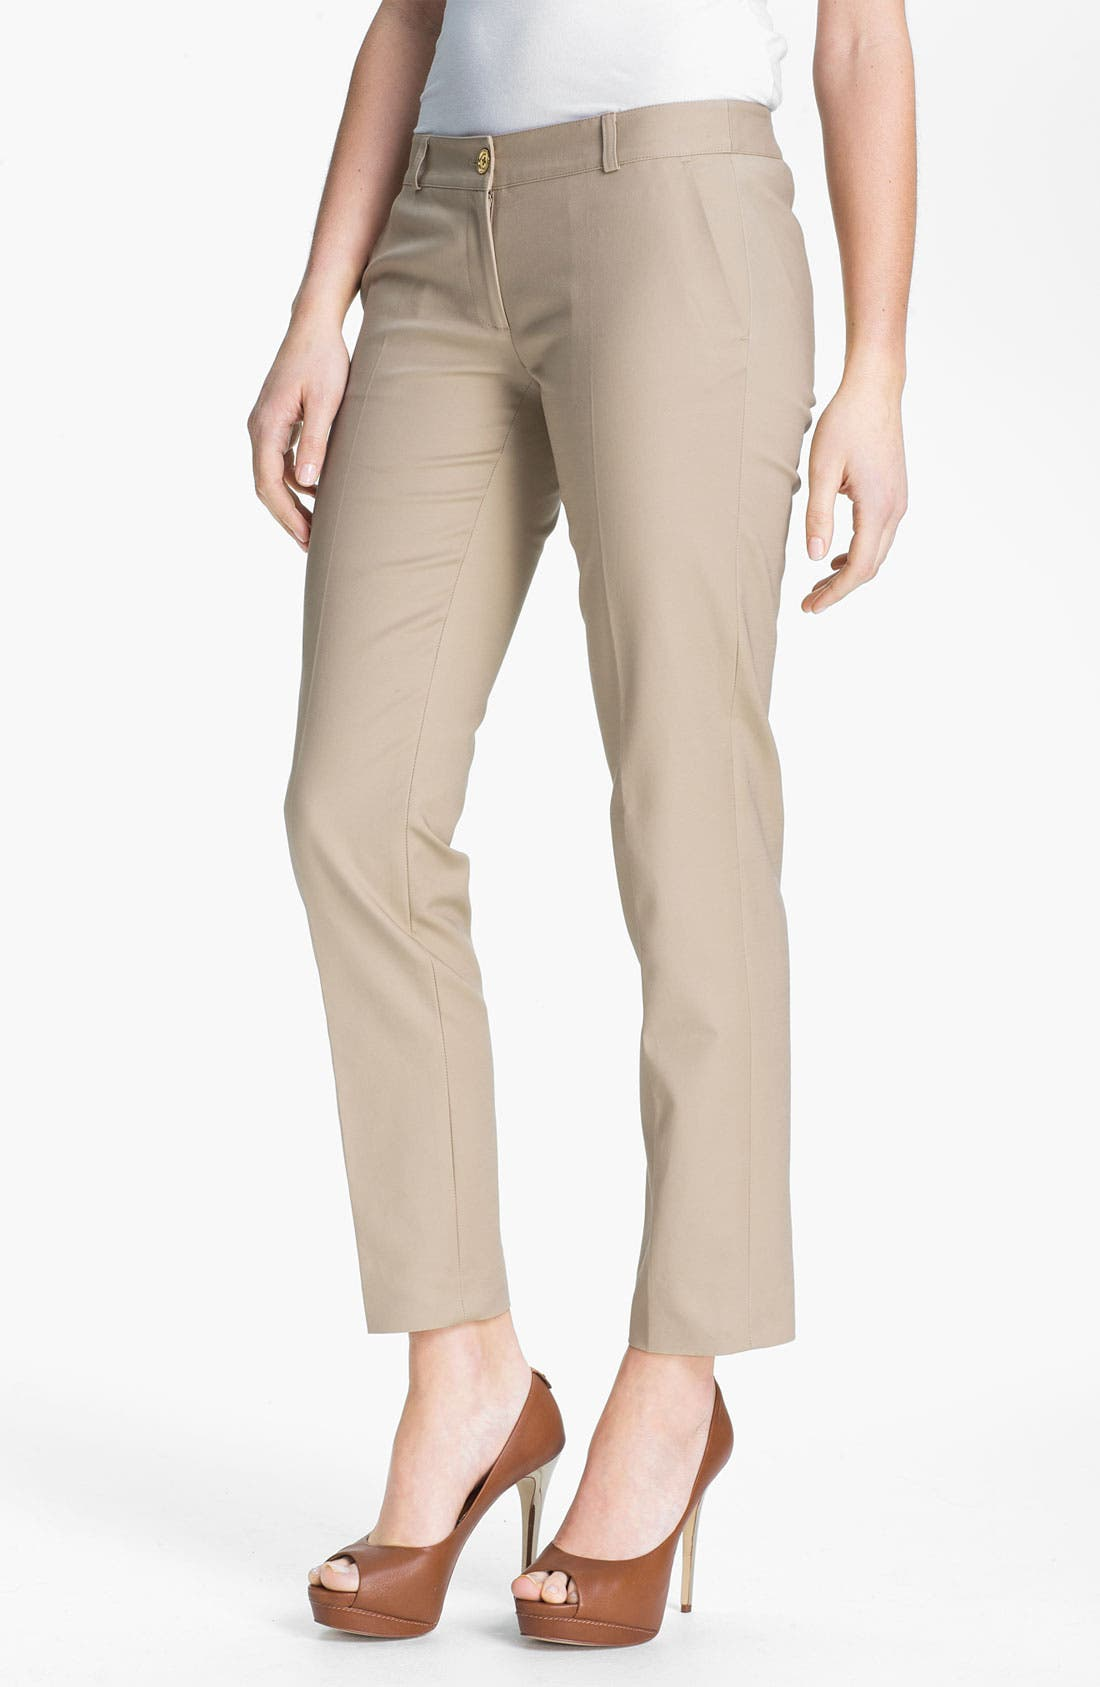 Alternate Image 1 Selected - MICHAEL Michael Kors Skinny Ankle Pants (Regular & Petite)